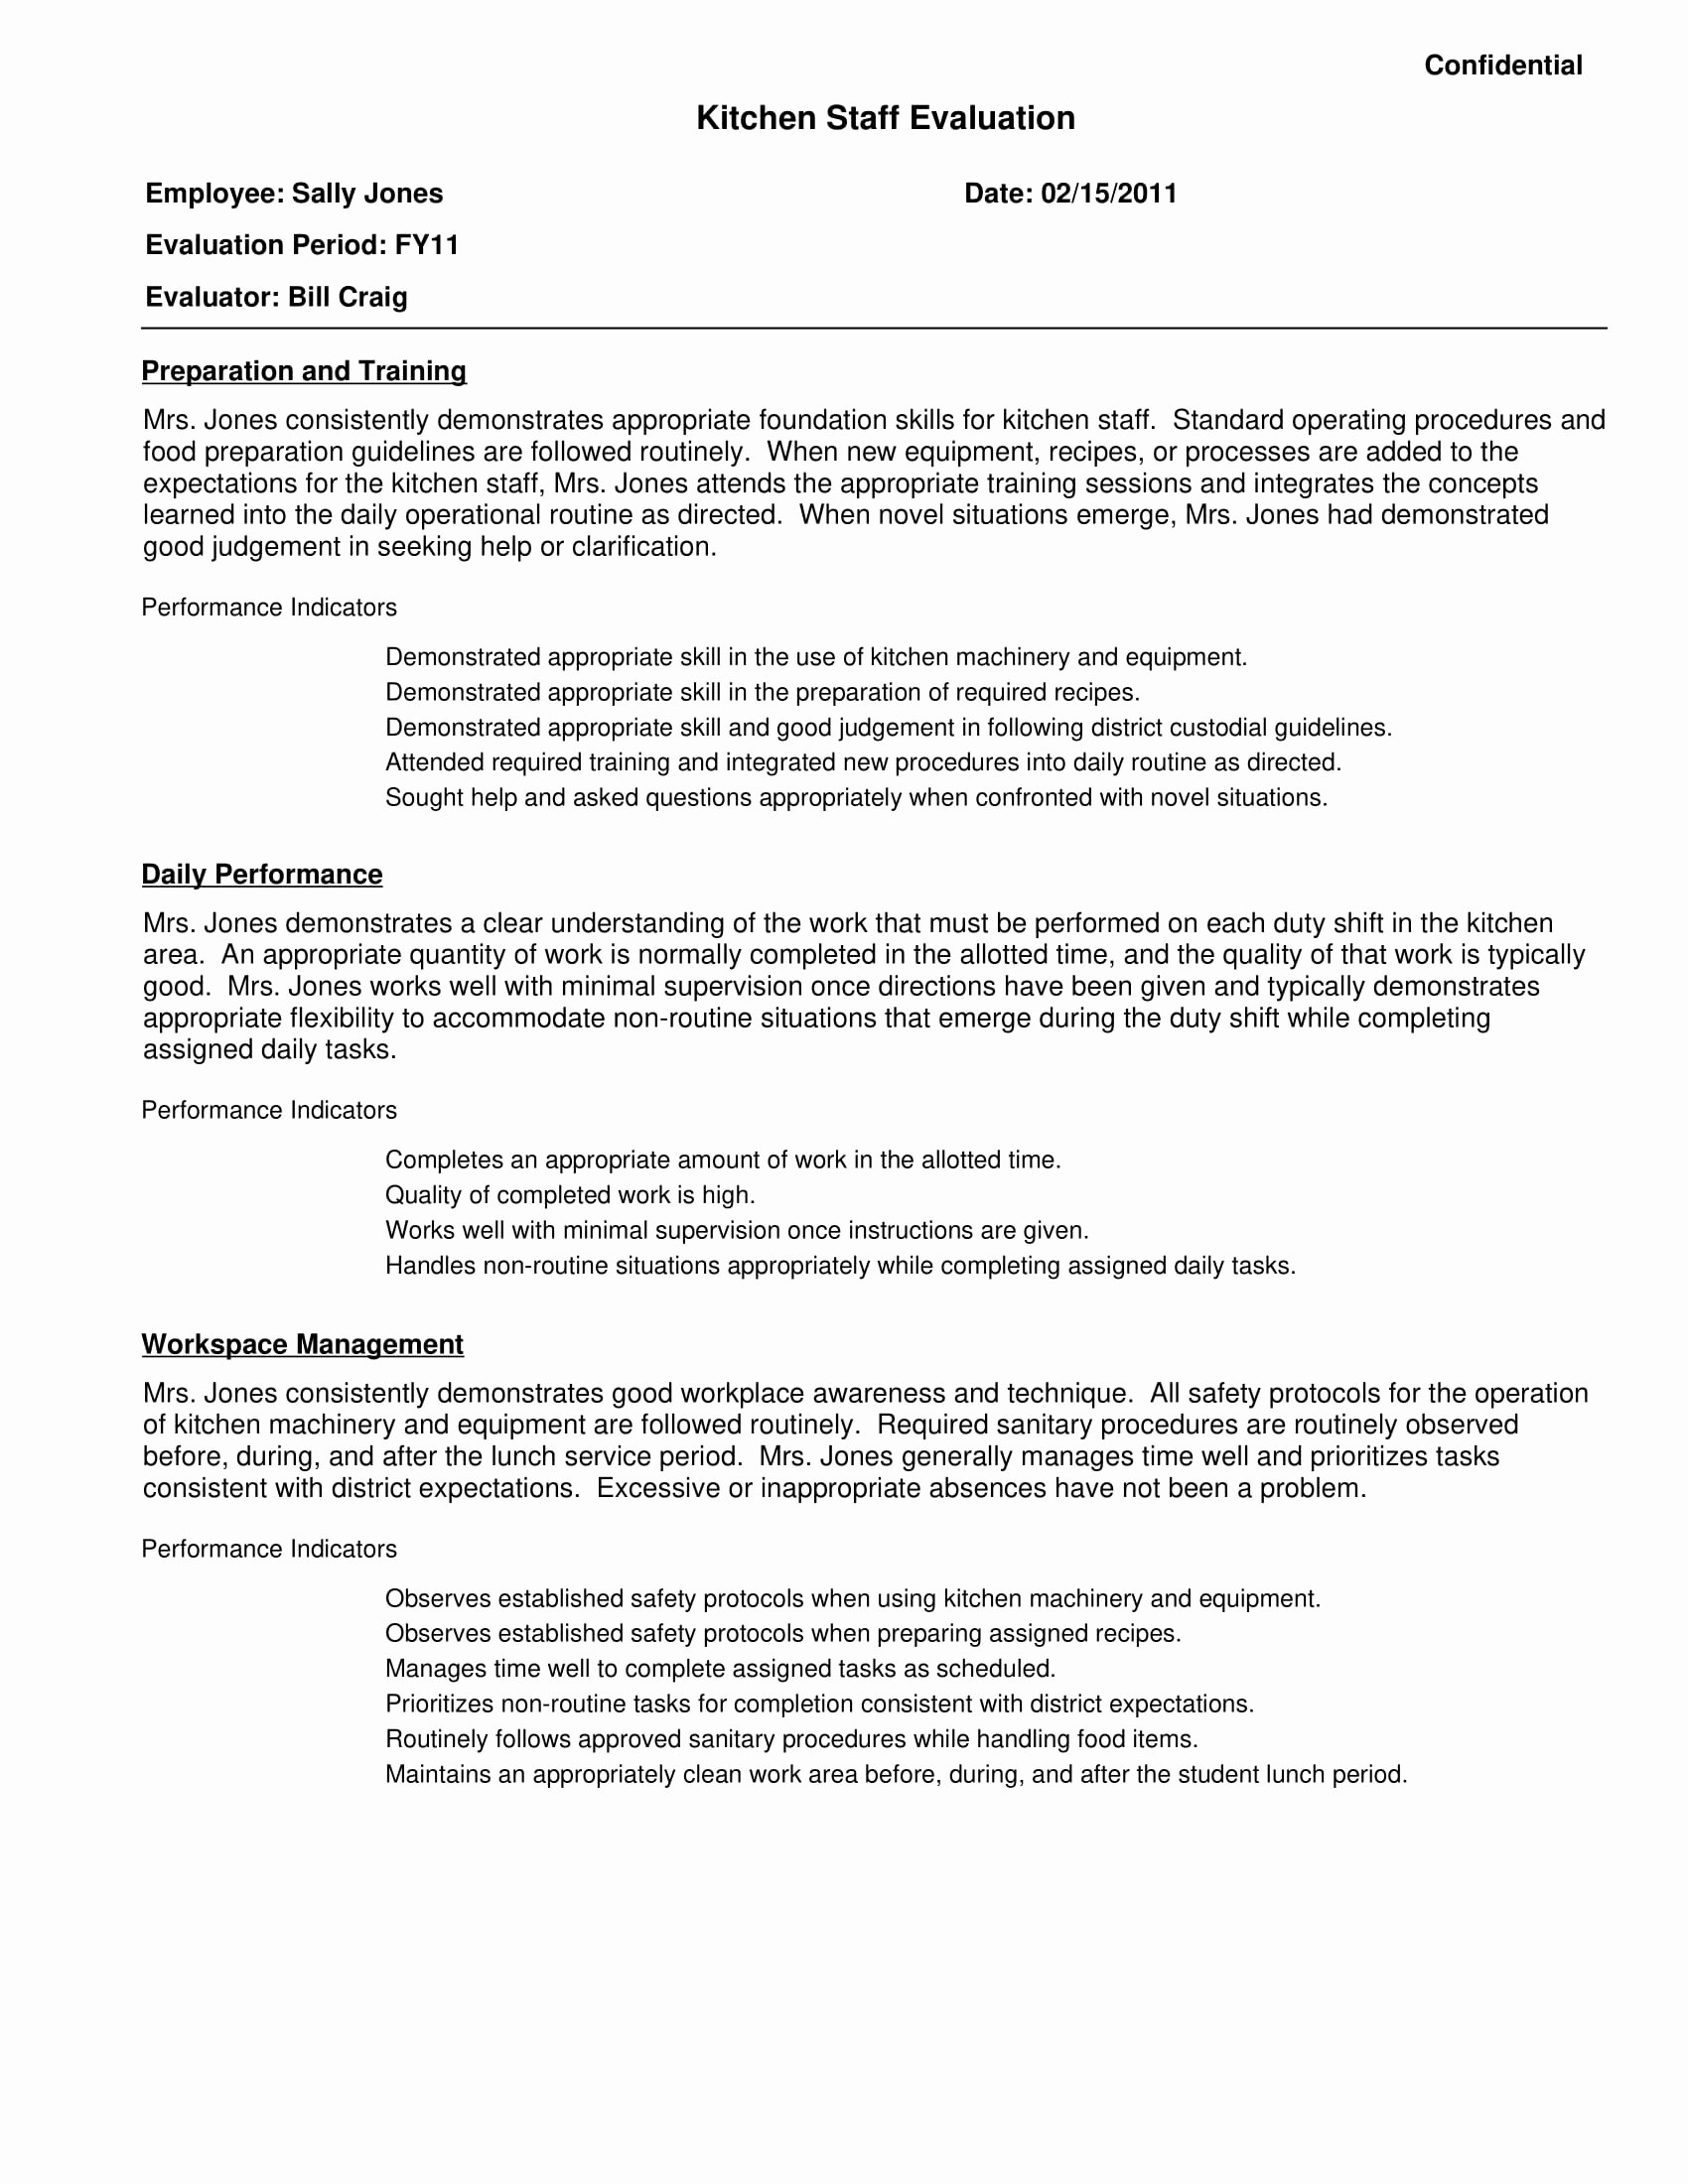 Restaurant Employee Evaluation form Best Of Free 7 Restaurant Employee Evaluation forms In Pdf